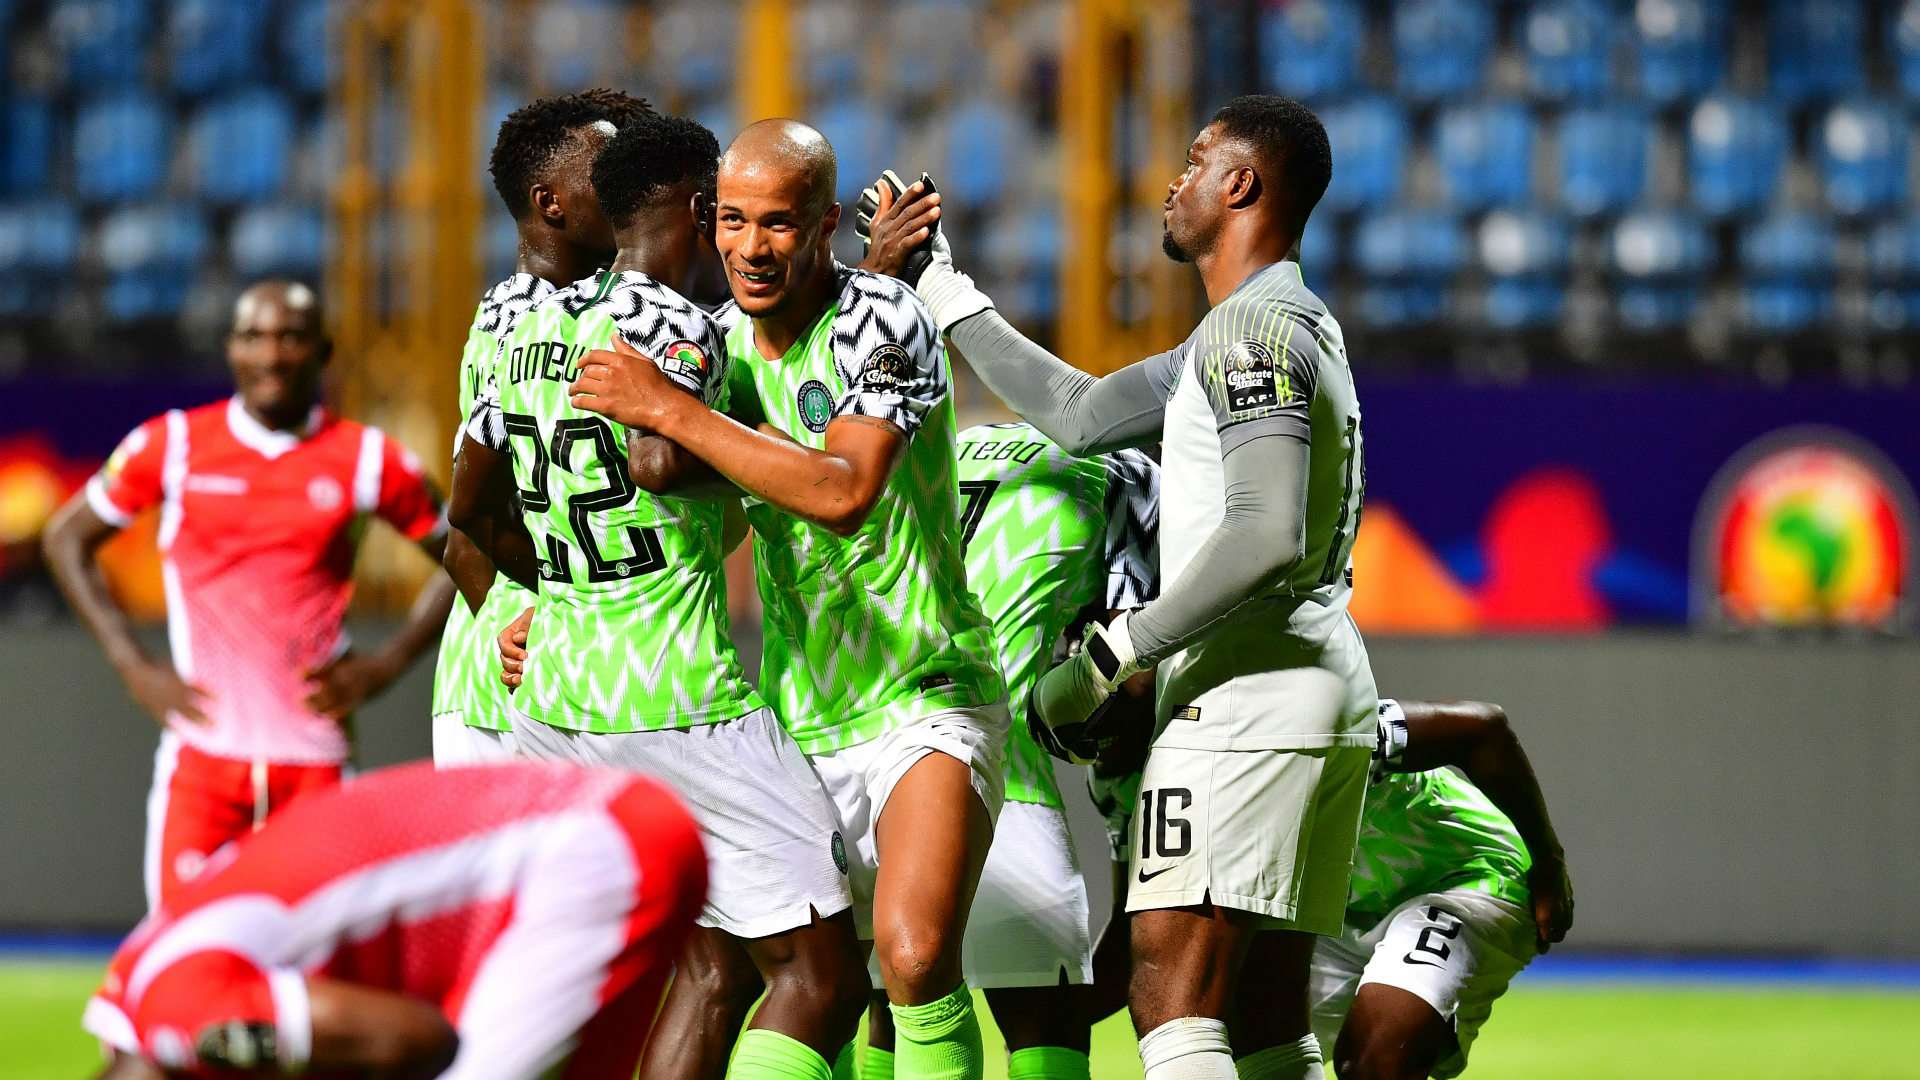 Ukraine 2-2 Nigeria: Where the game was won and lost